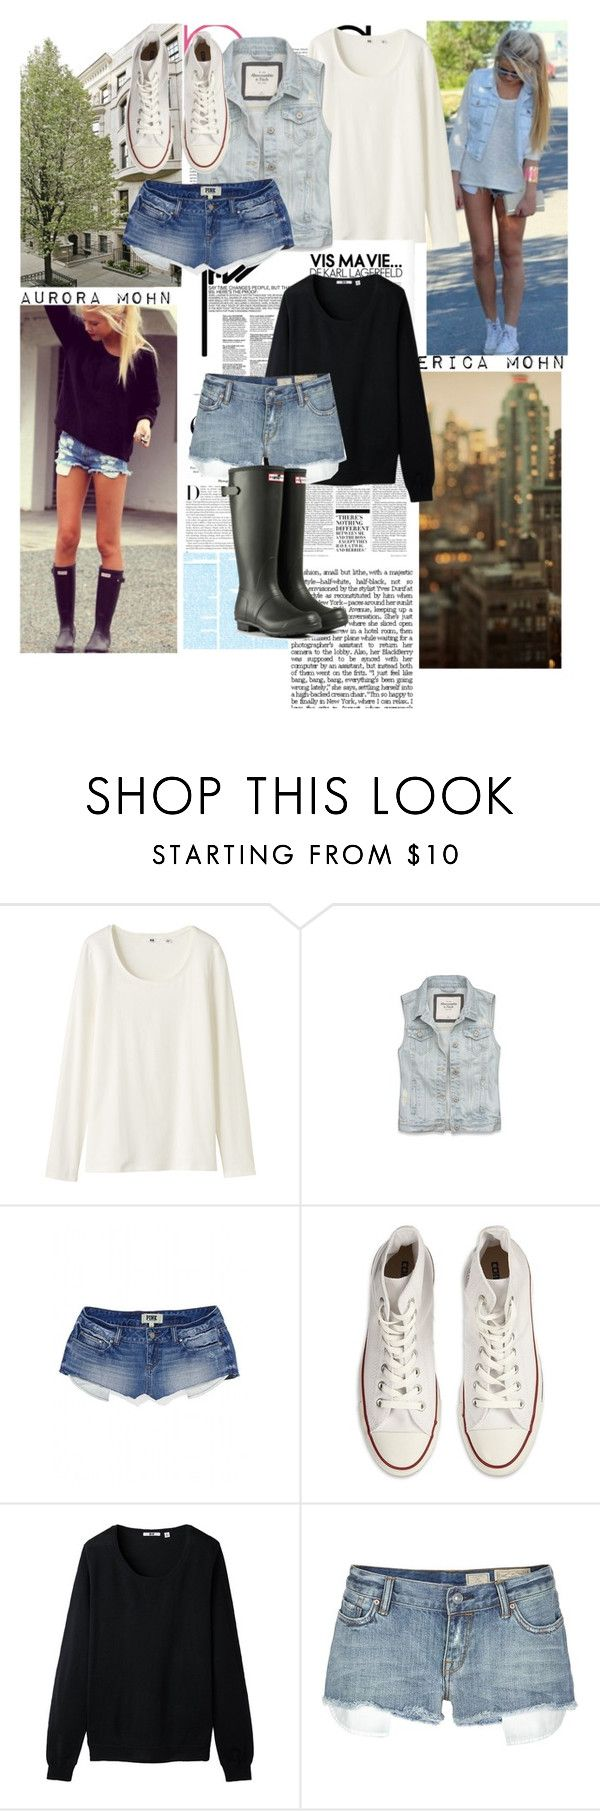 """""""Erica and Aurora Mohn"""" by pinkheadset ❤ liked on Polyvore featuring beauty, Karl Lagerfeld, Nicki Minaj, Uniqlo, Abercrombie & Fitch, Victoria's Secret, Converse, AllSaints and Hunter"""